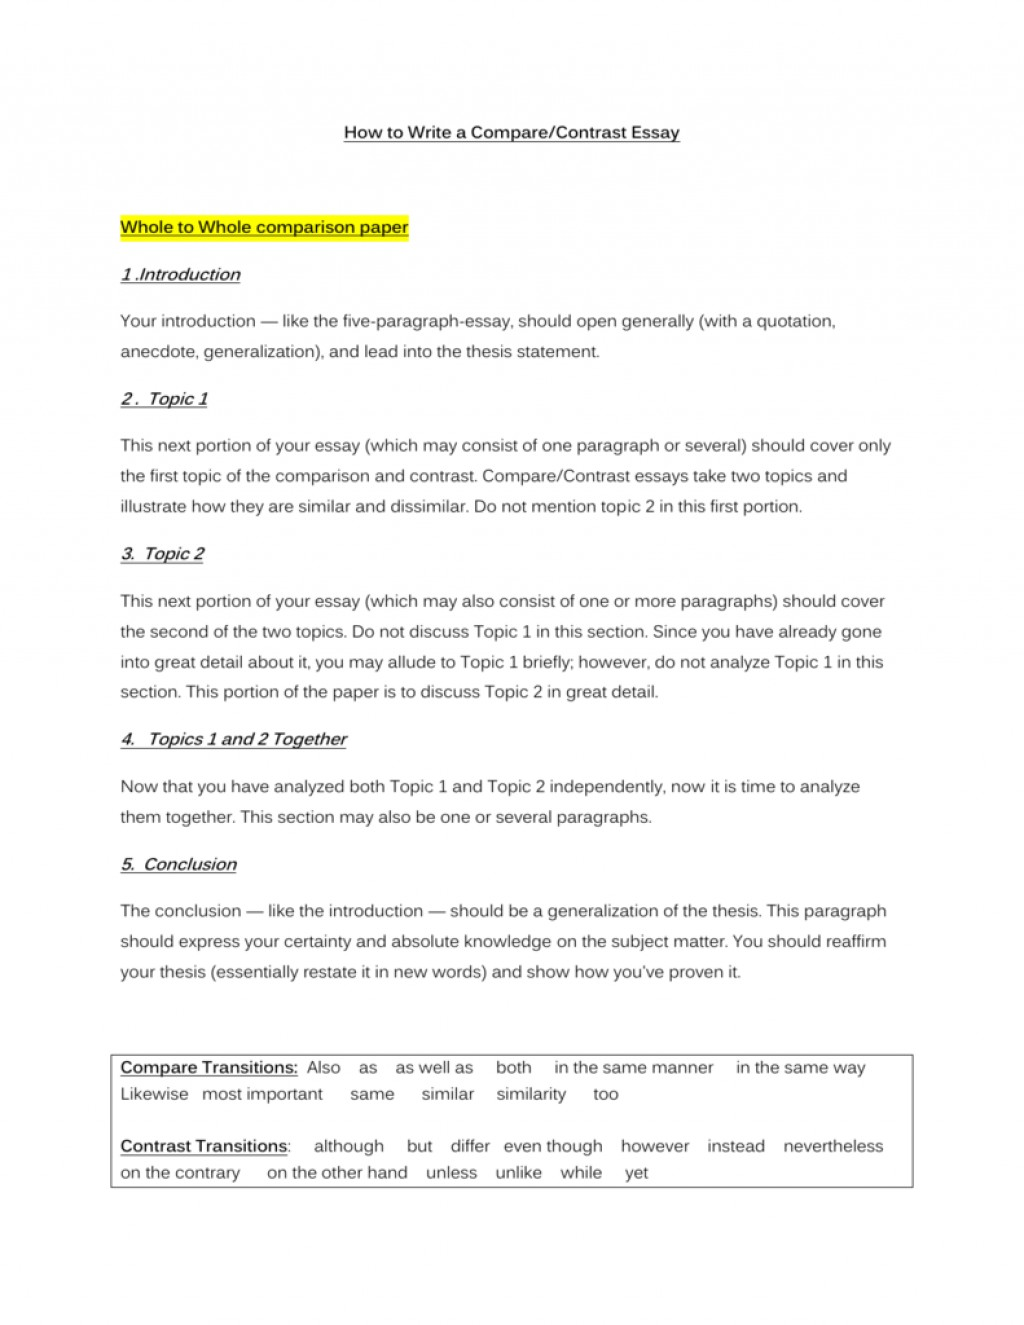 010 Essay Example 006842759 1 Compare And Contrast Top Intro Introduction Paragraph Sample Large